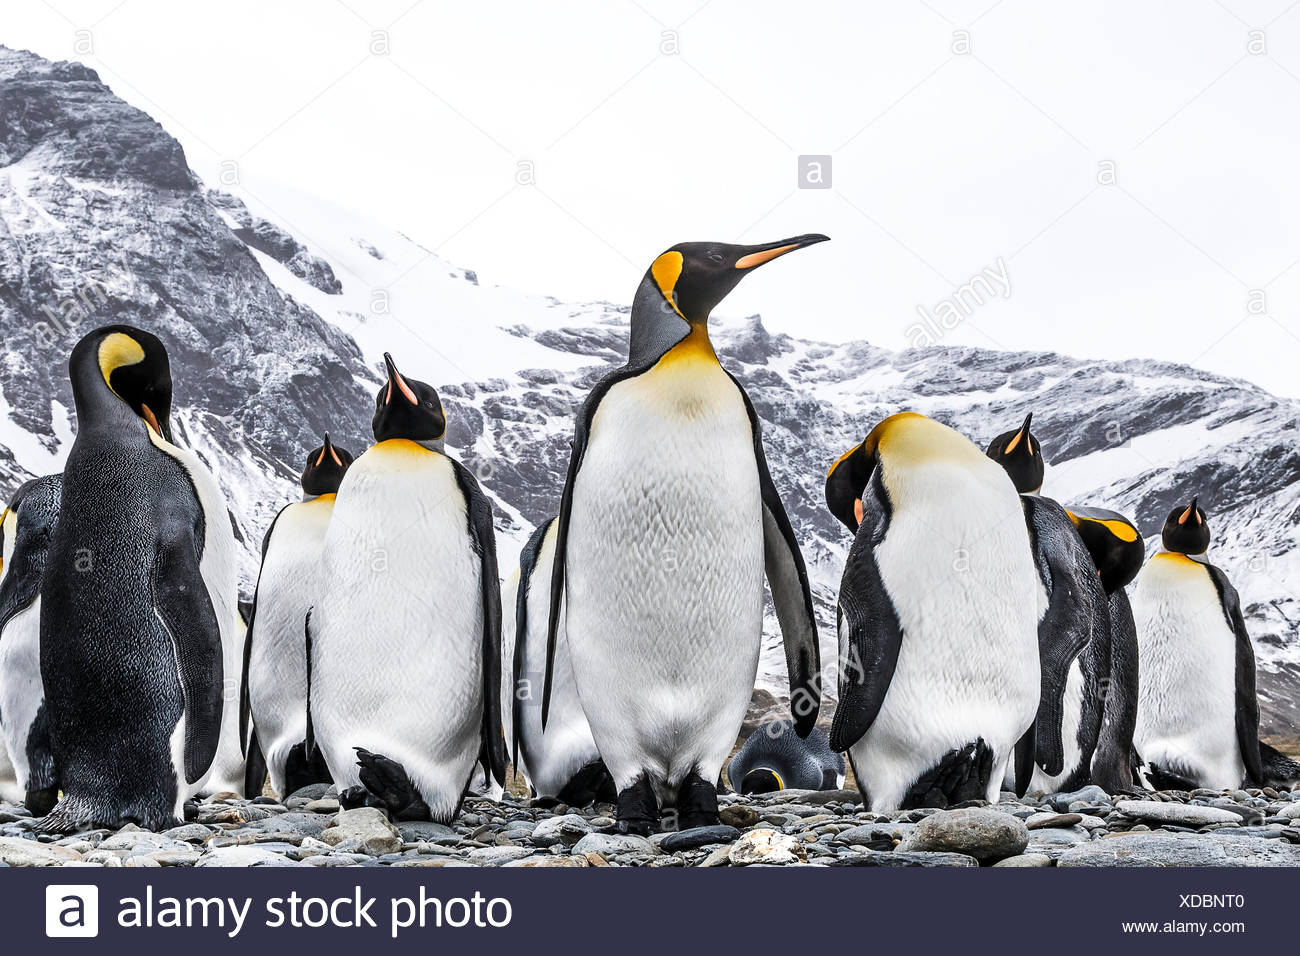 King penguins (Aptenodytes patagonicus) on a beach; South Georgia, South Georgia, South Georgia and the South Sandwich Islands, United Kingdom - Stock Image